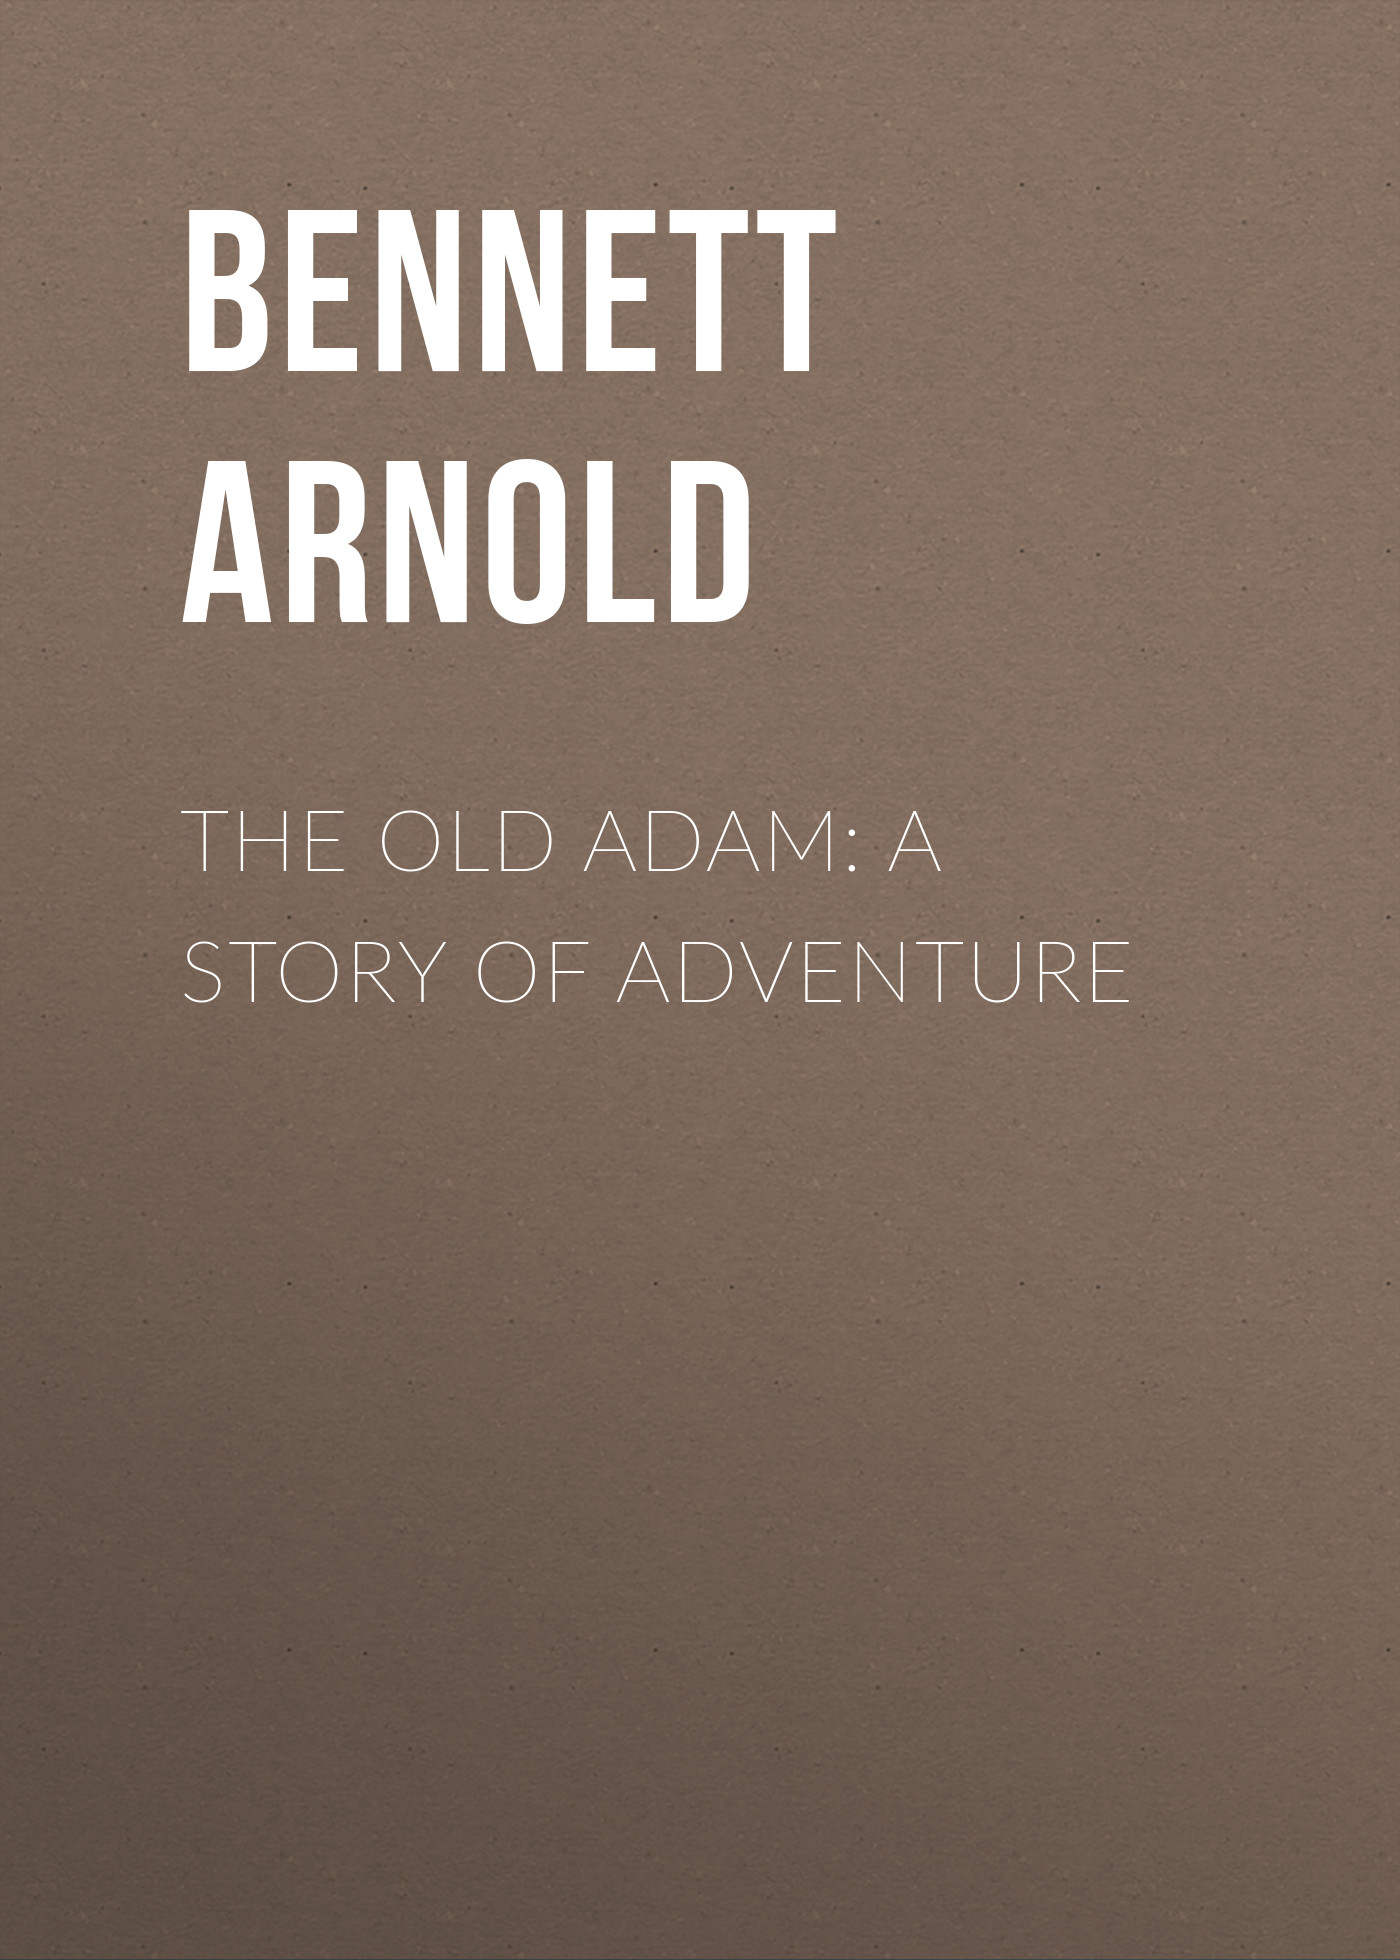 цены Bennett Arnold The Old Adam: A Story of Adventure